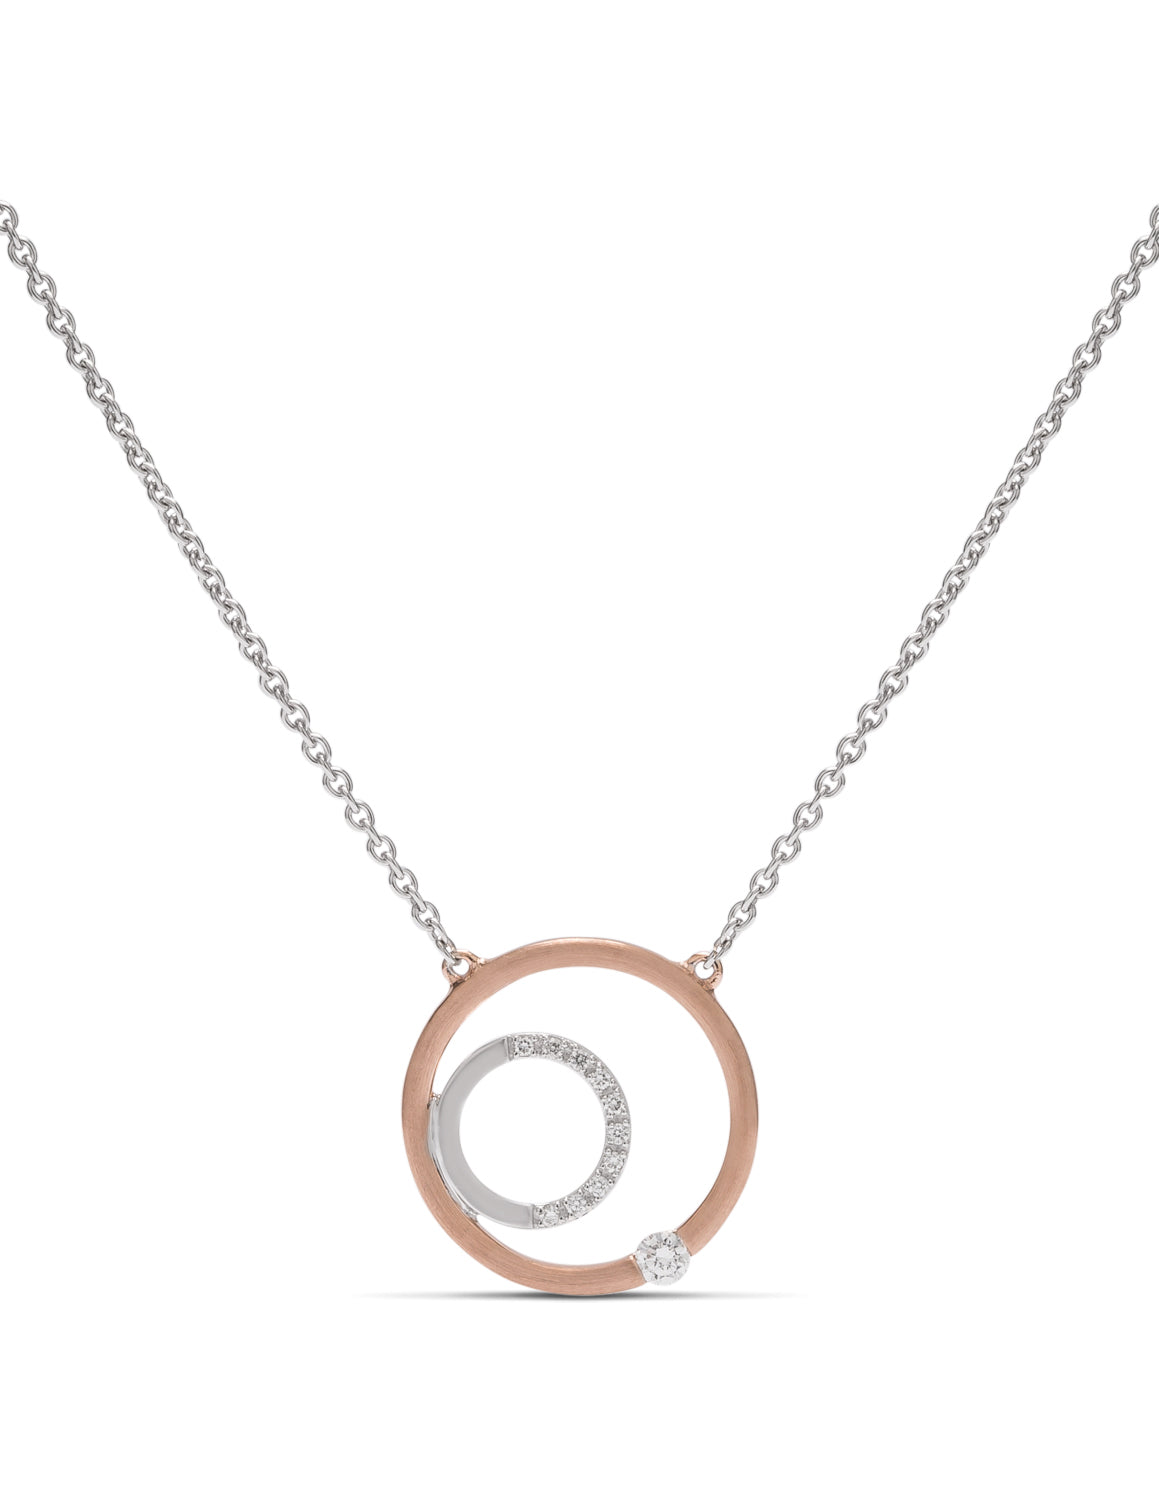 Two-Tone Double Circle Necklace - Charles Koll Jewellers